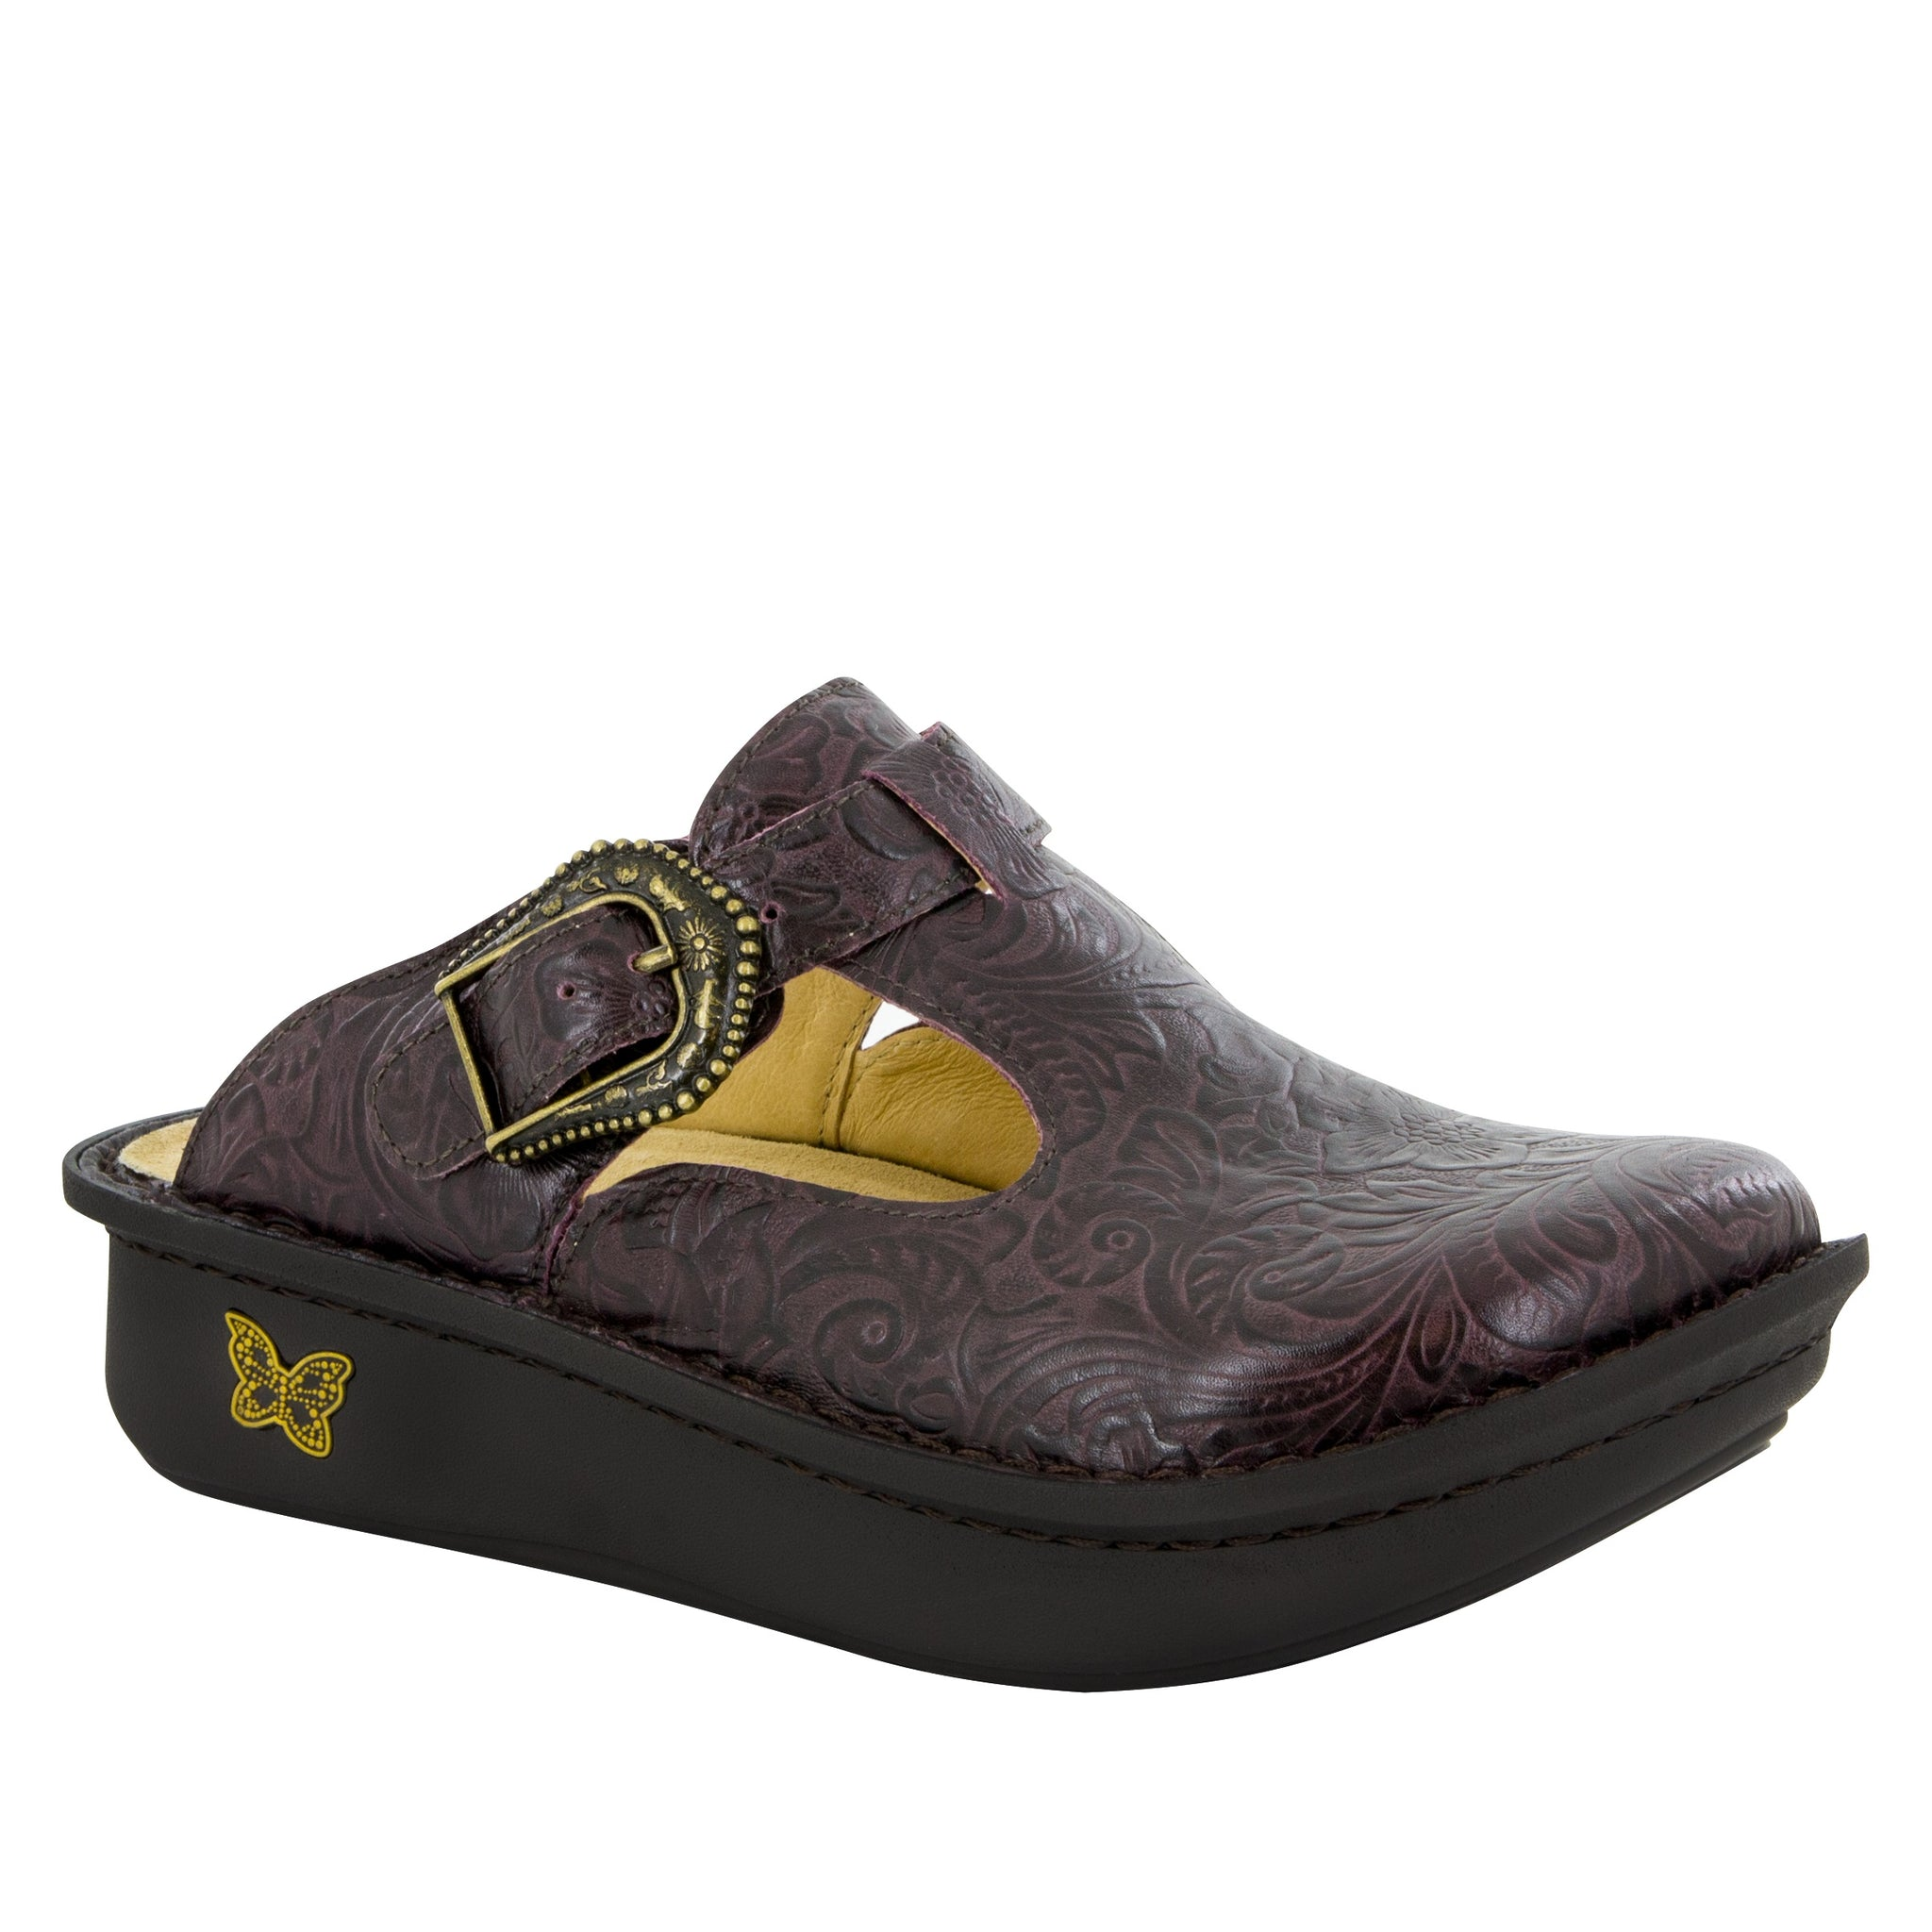 Alegria Classic Molasses Tooled Clog - Parker's Clothing & Gifts